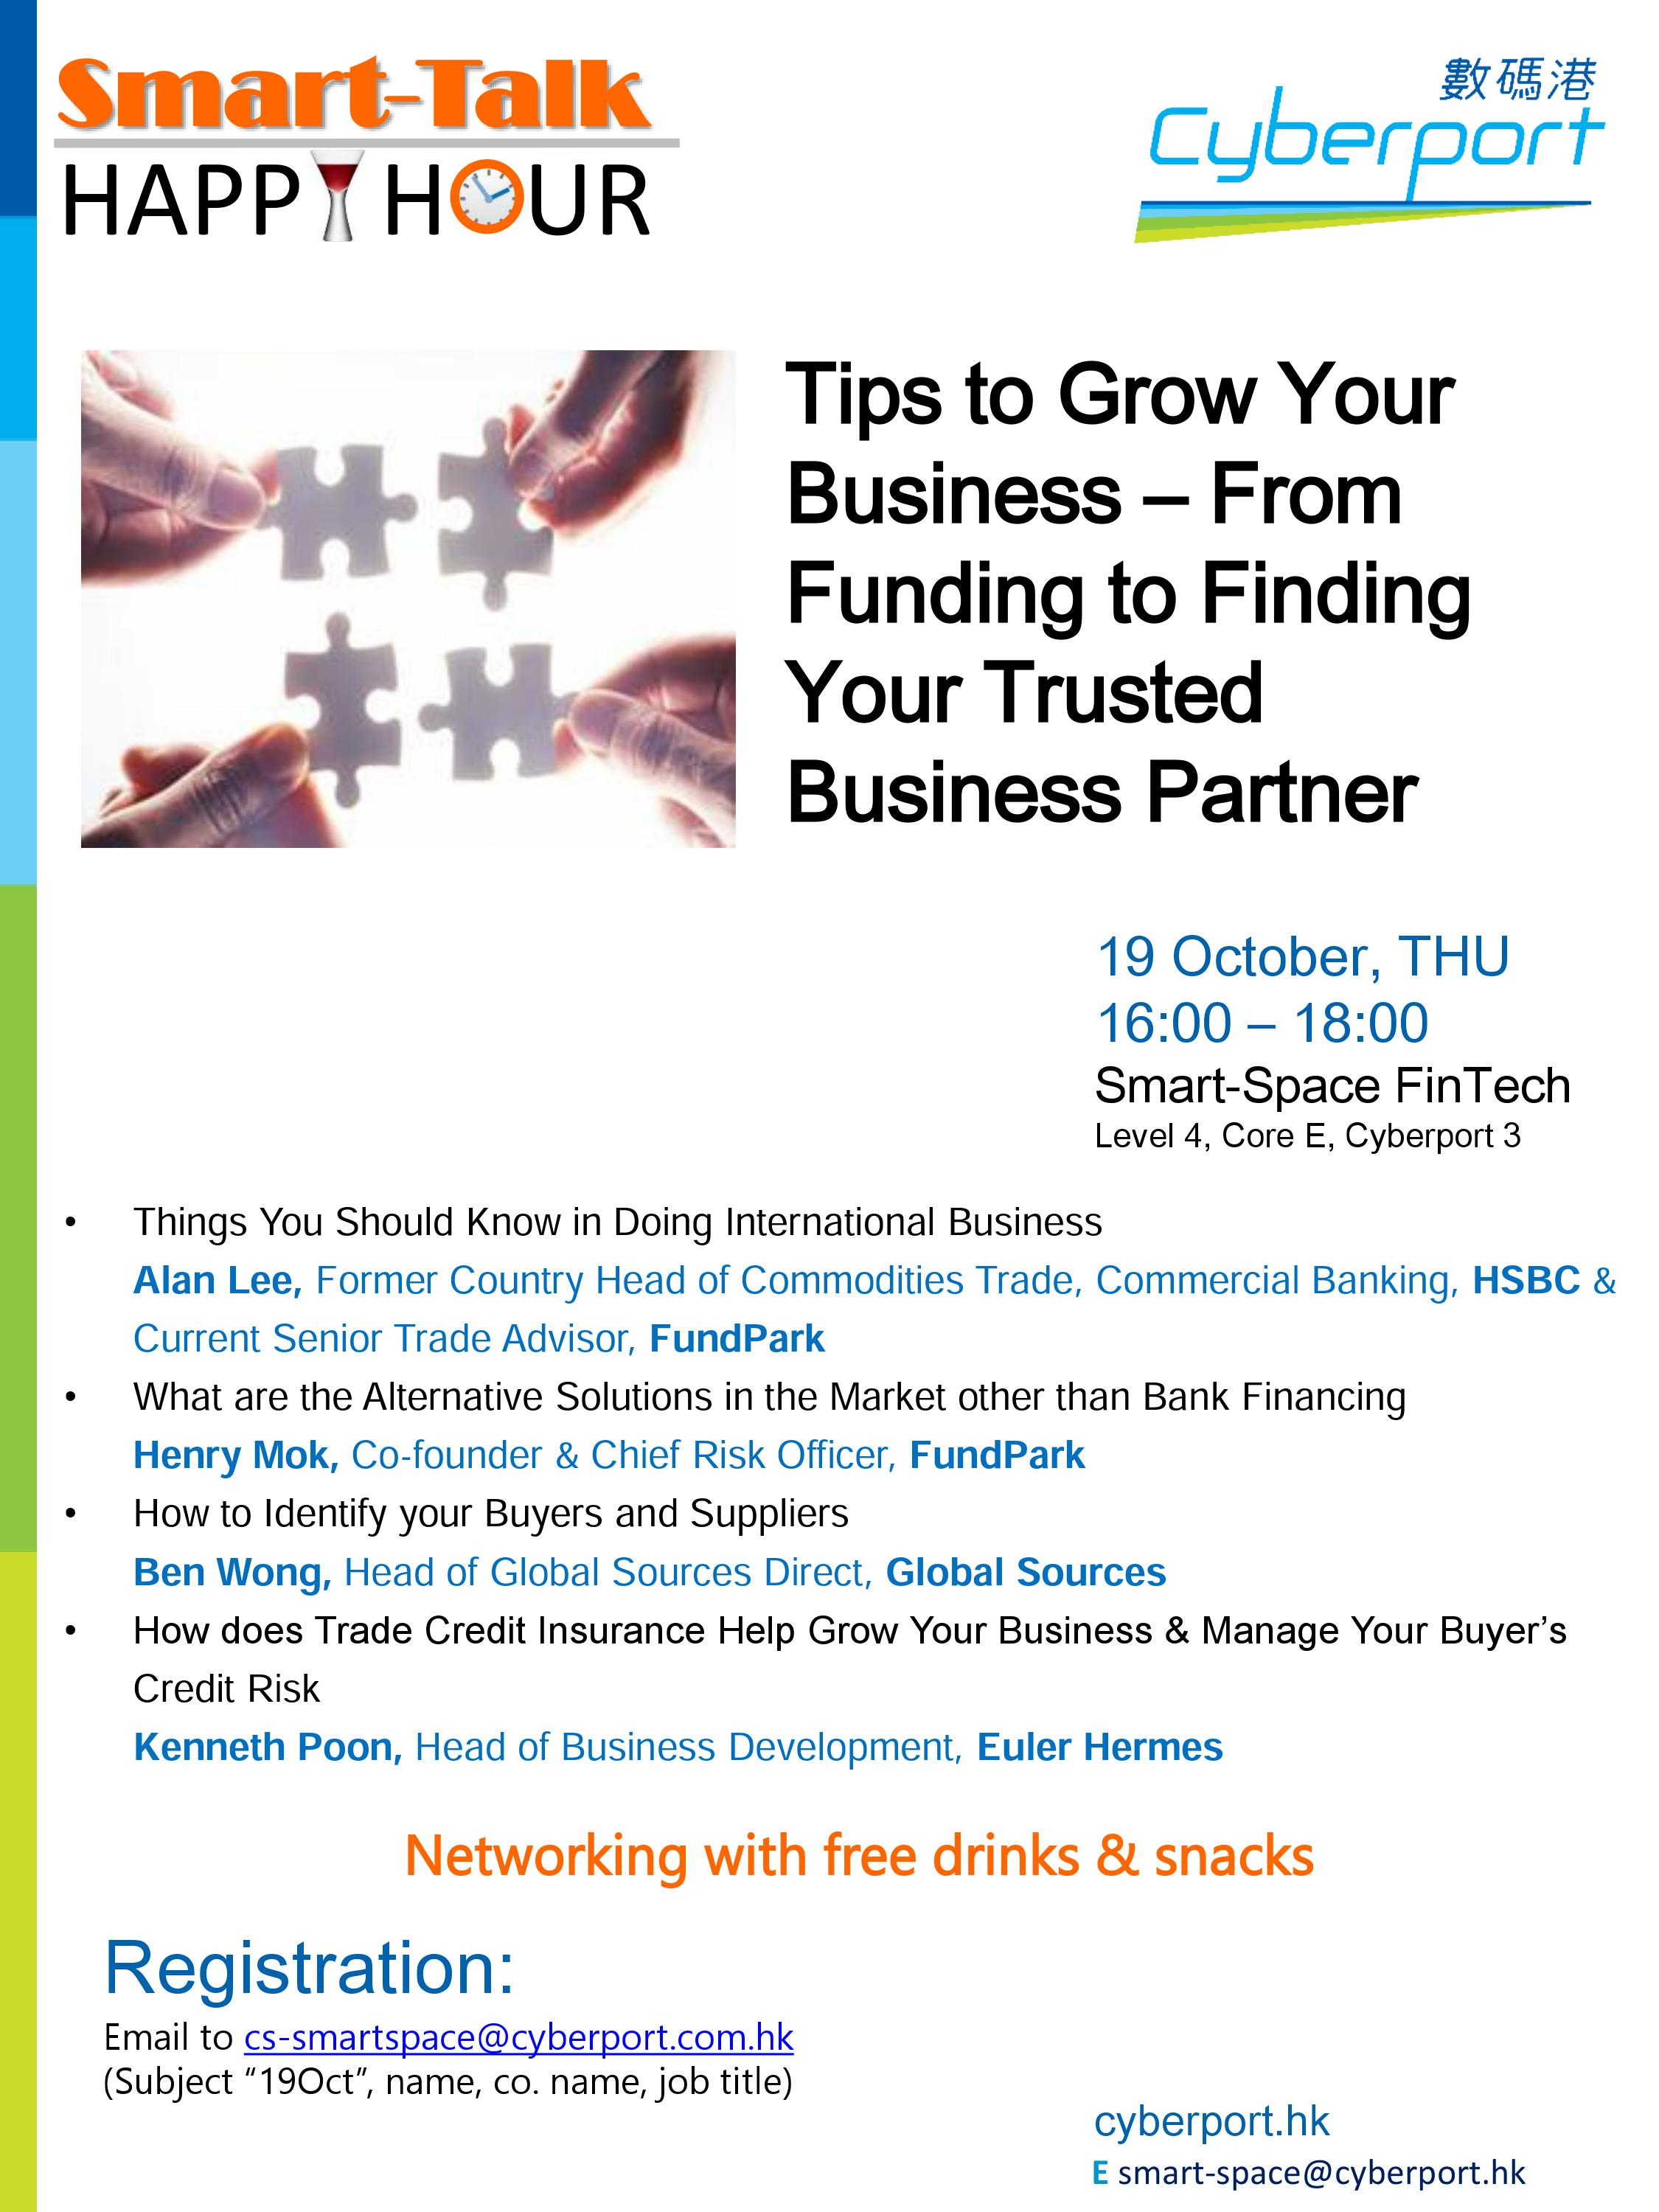 Smart Talk & Happy Hour: Tips to Grow Your Business – From Funding to Finding Your Trusted Business Partner